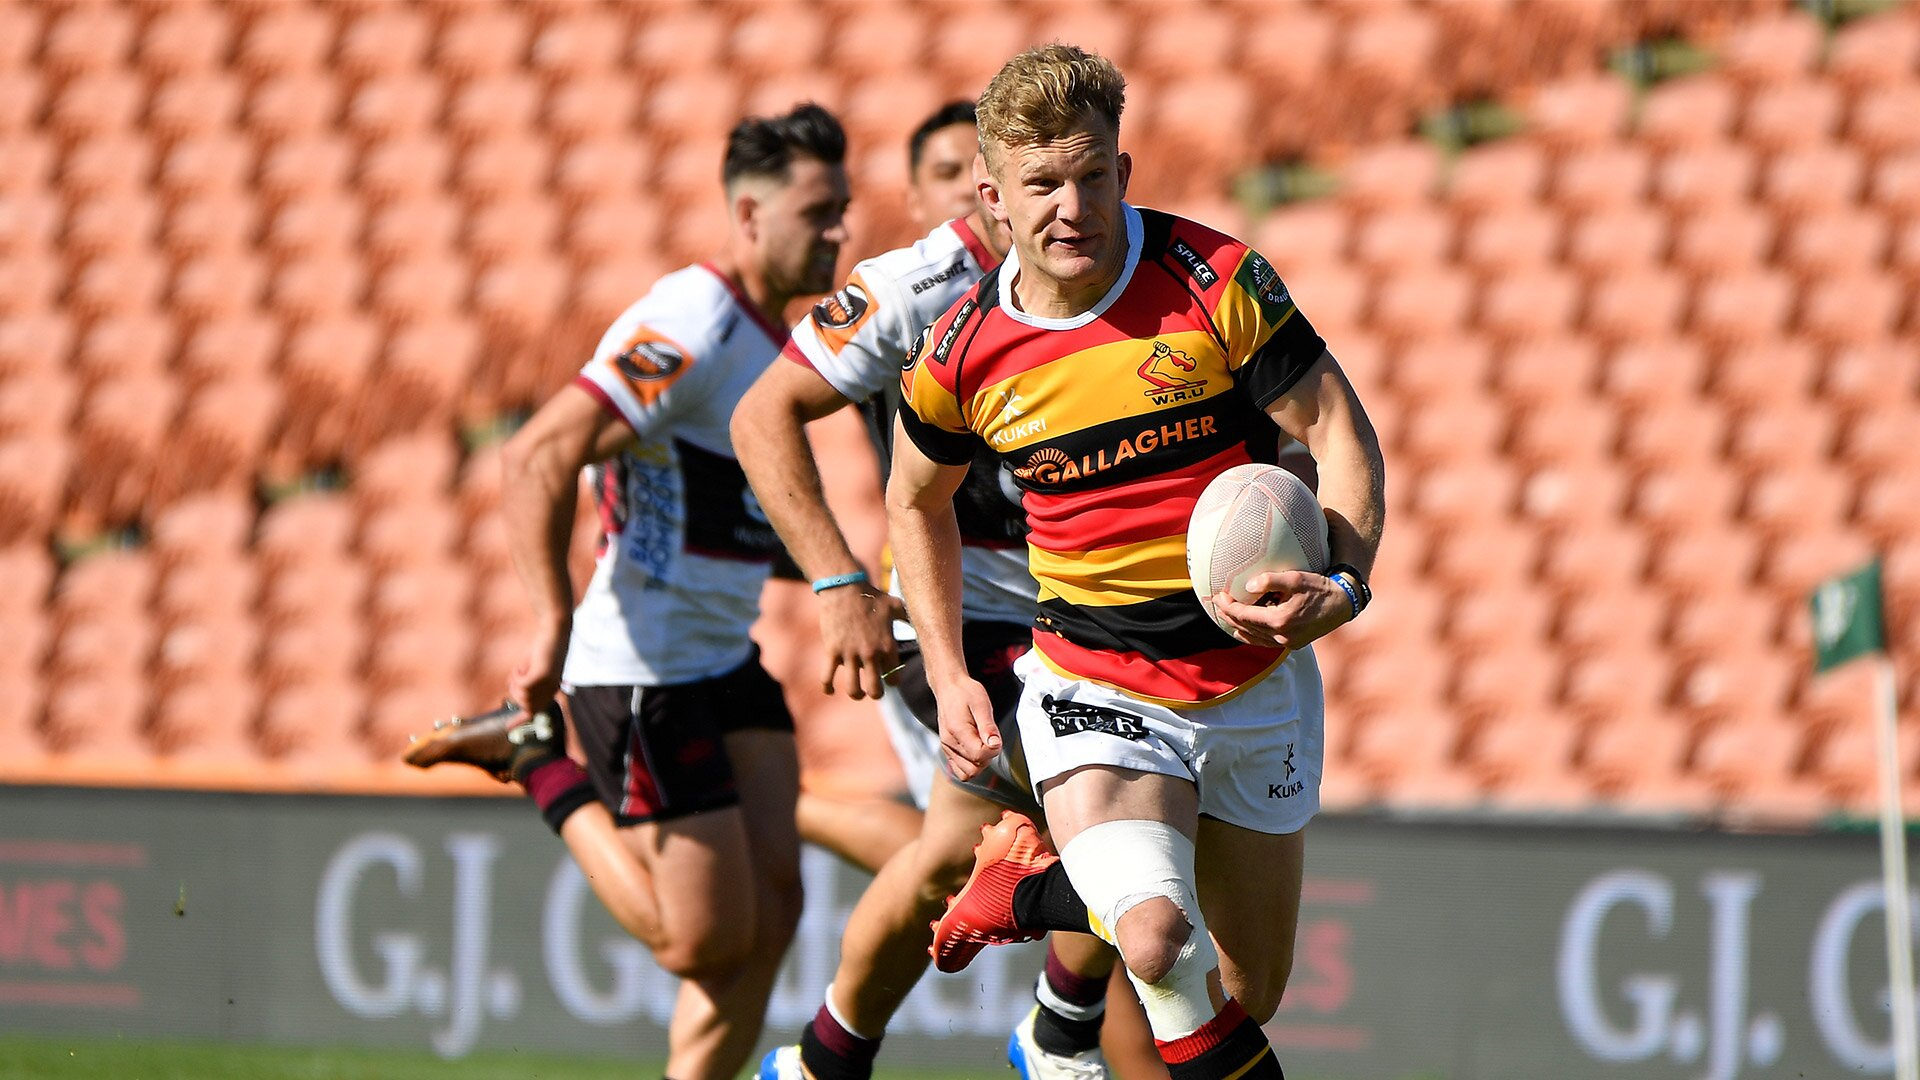 Watch: Damian McKenzie scores second try in as many weeks as Waikato establish themselves as Mitre 10 Cup contenders